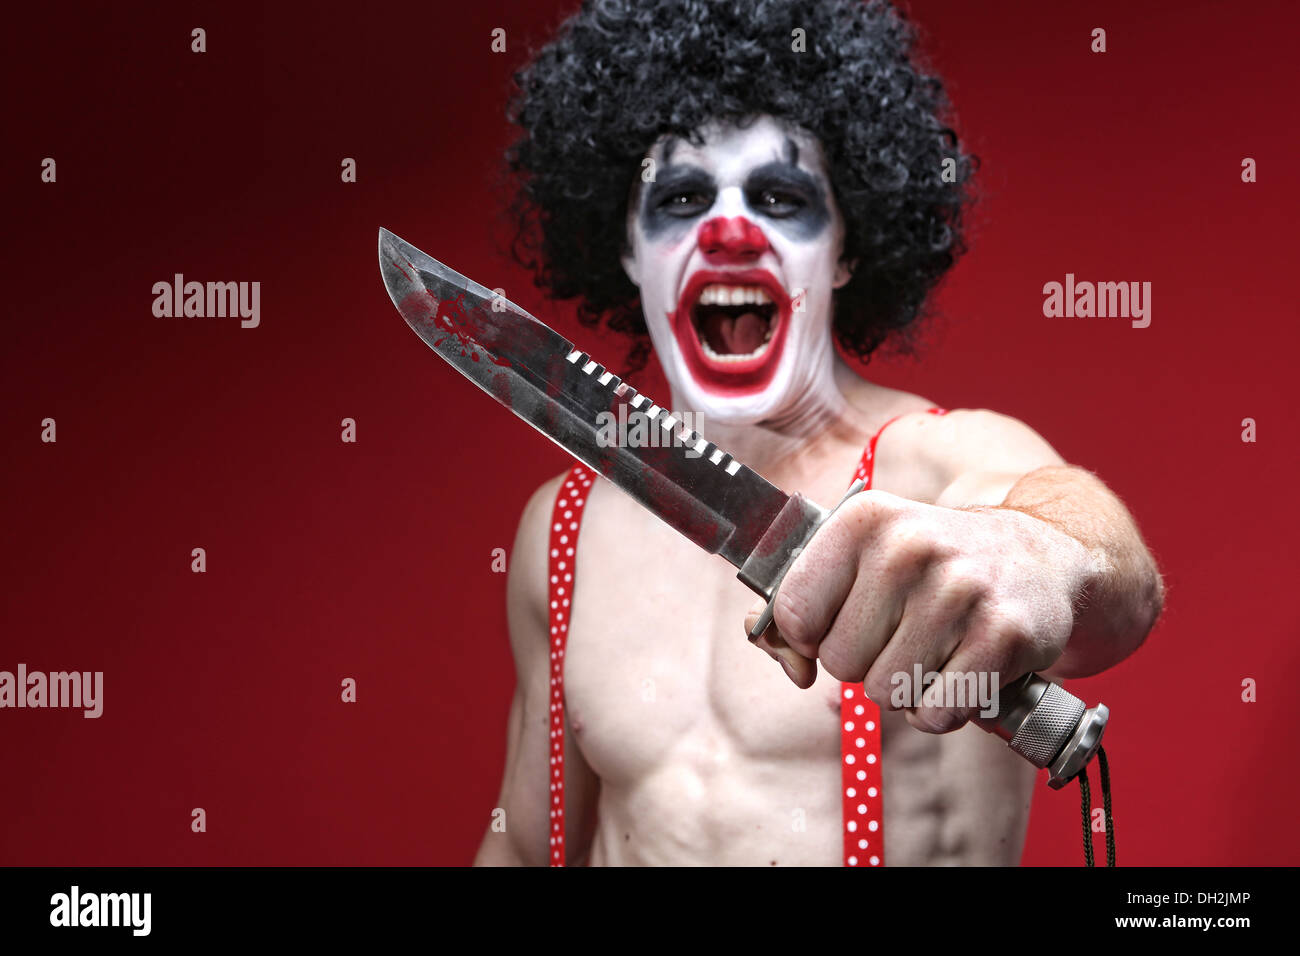 Bösen Spuk Clown-Portrait mit Messer Stockbild